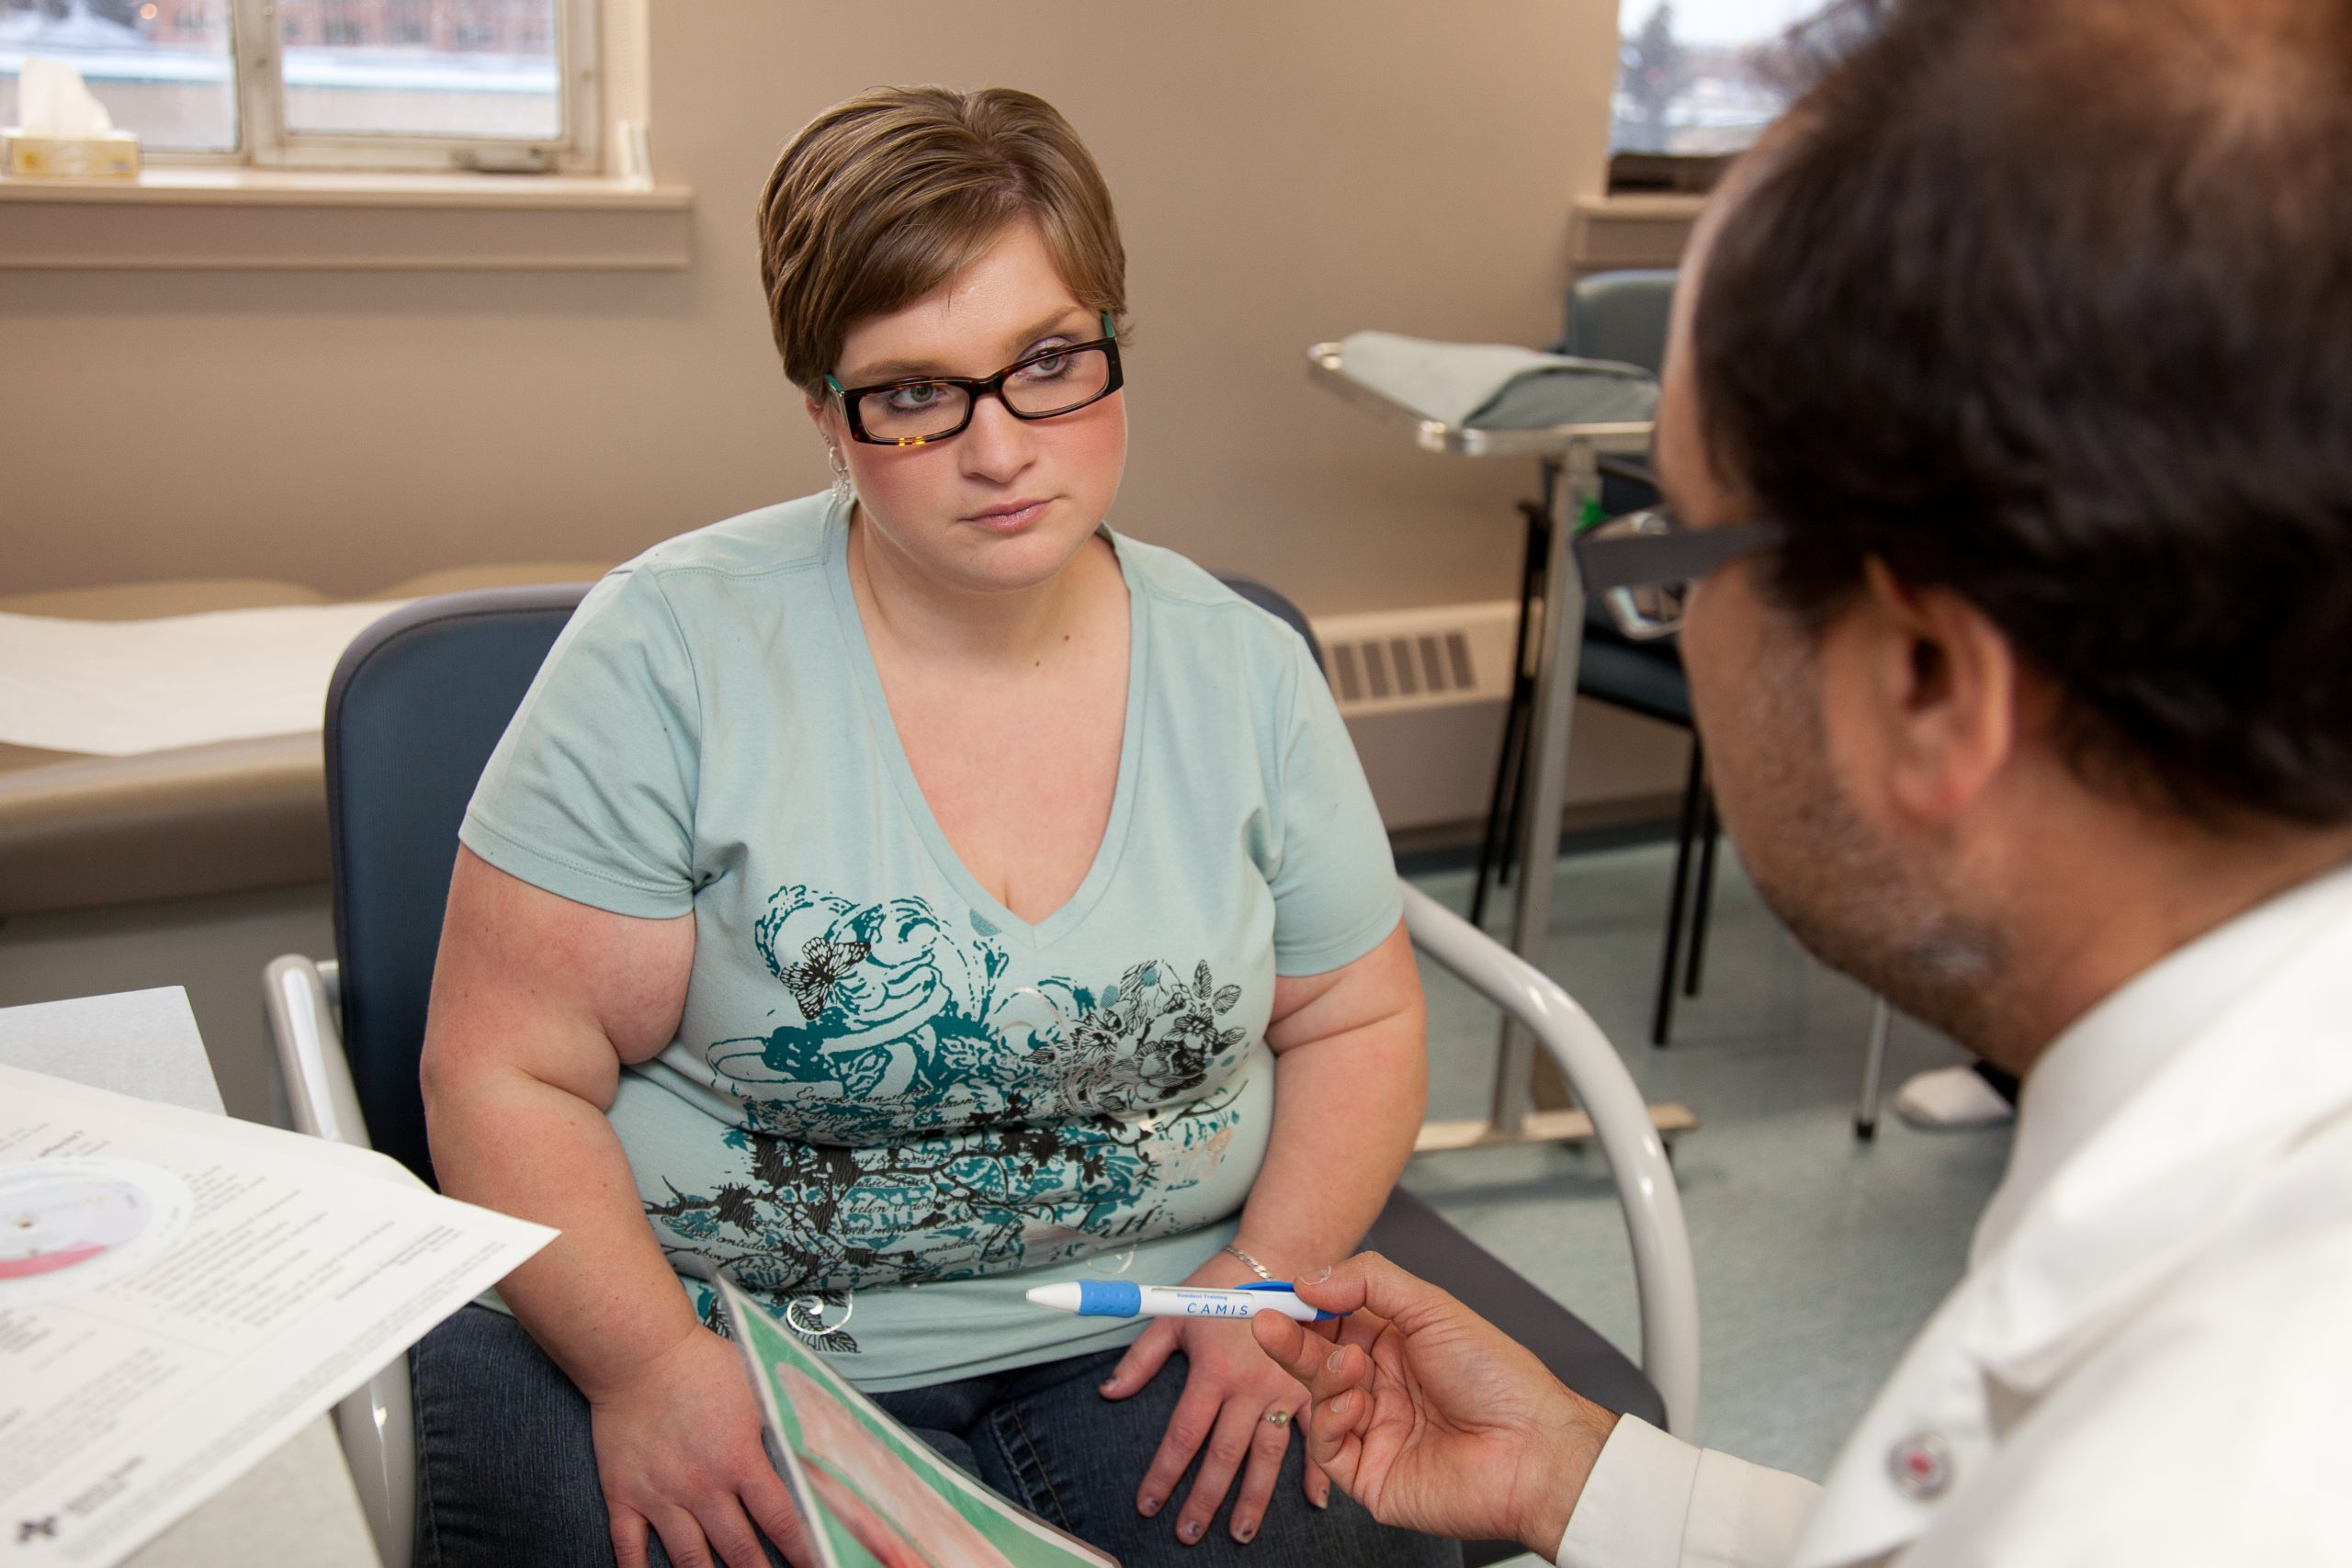 Seated female patient with obesity listens skeptically to a male physician